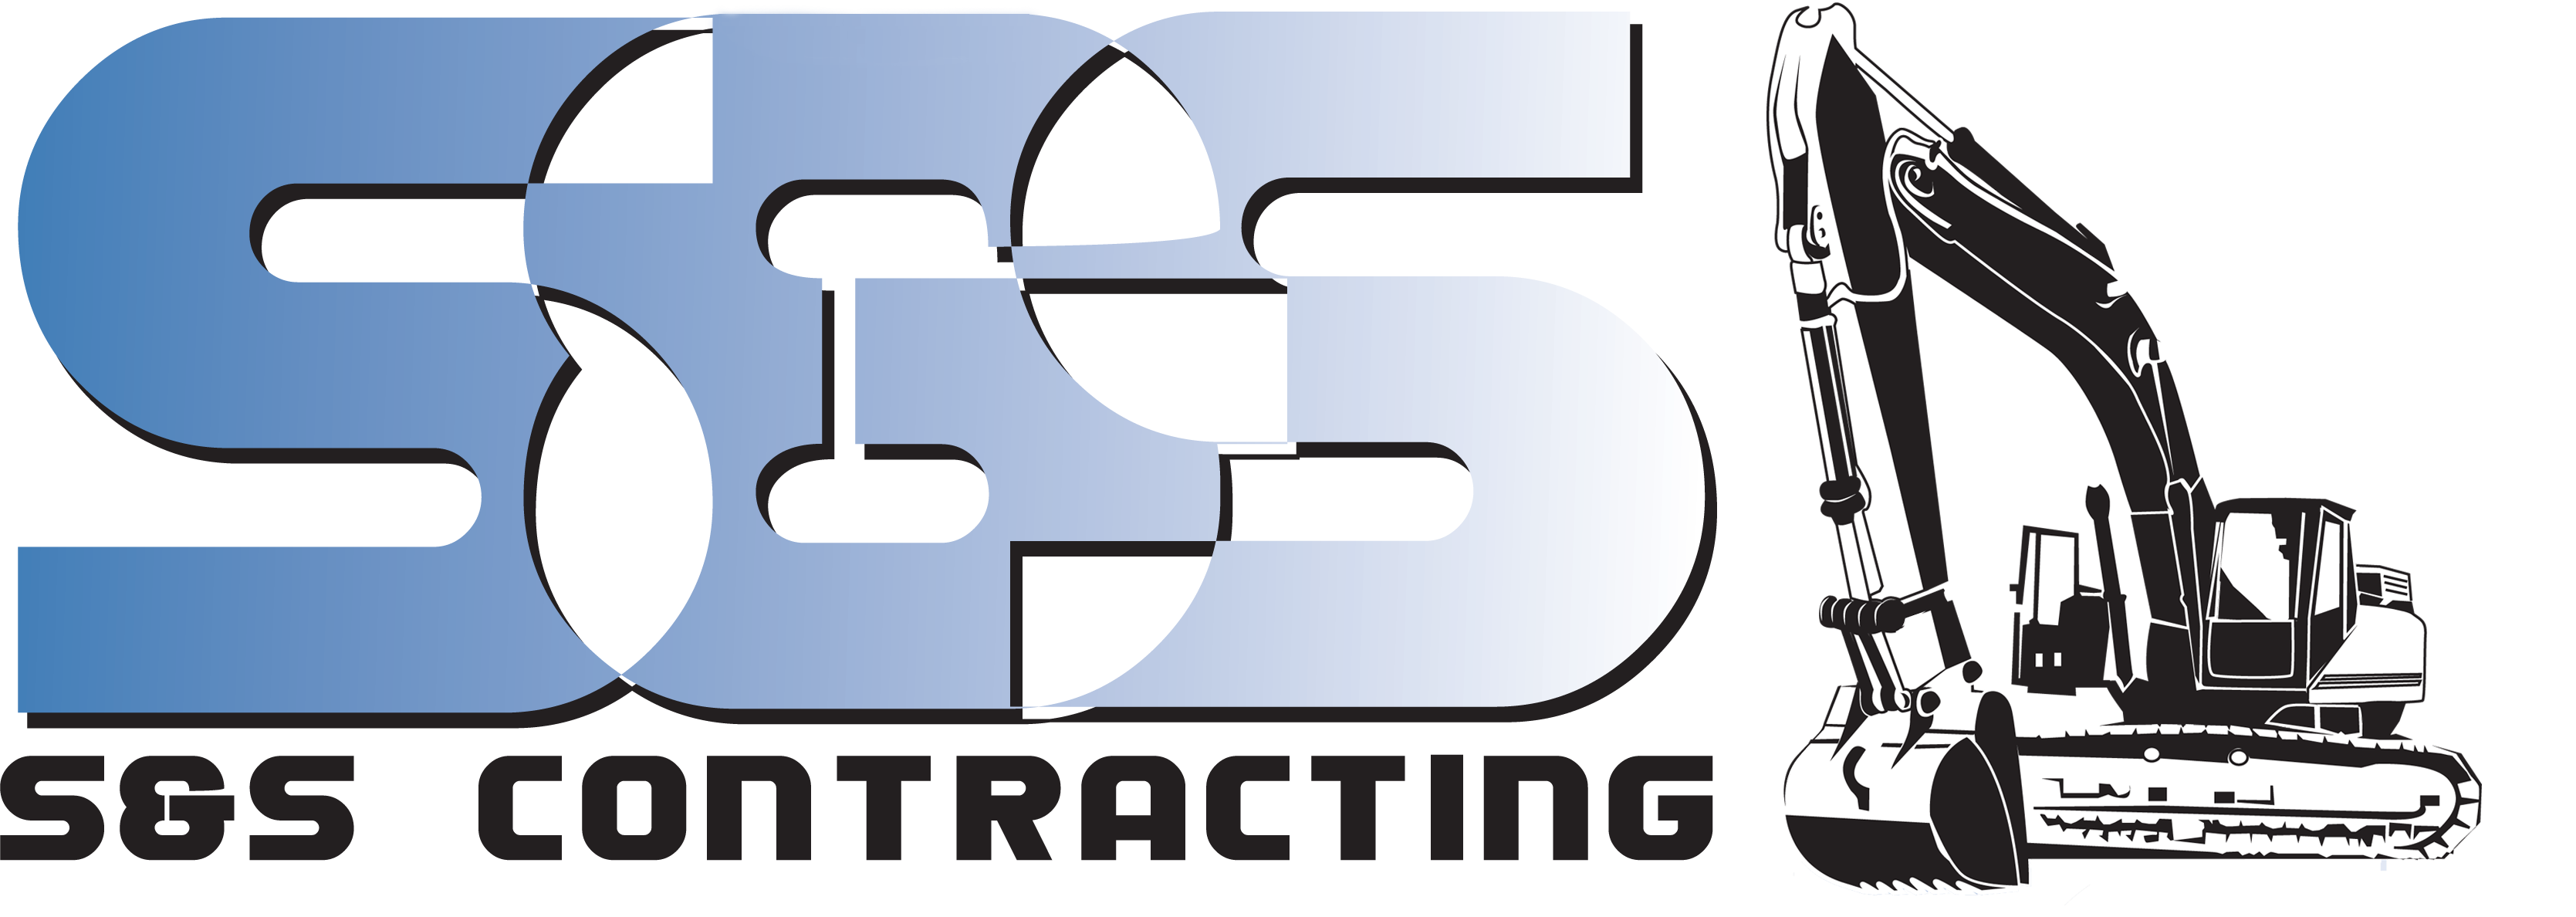 S&S Contracting